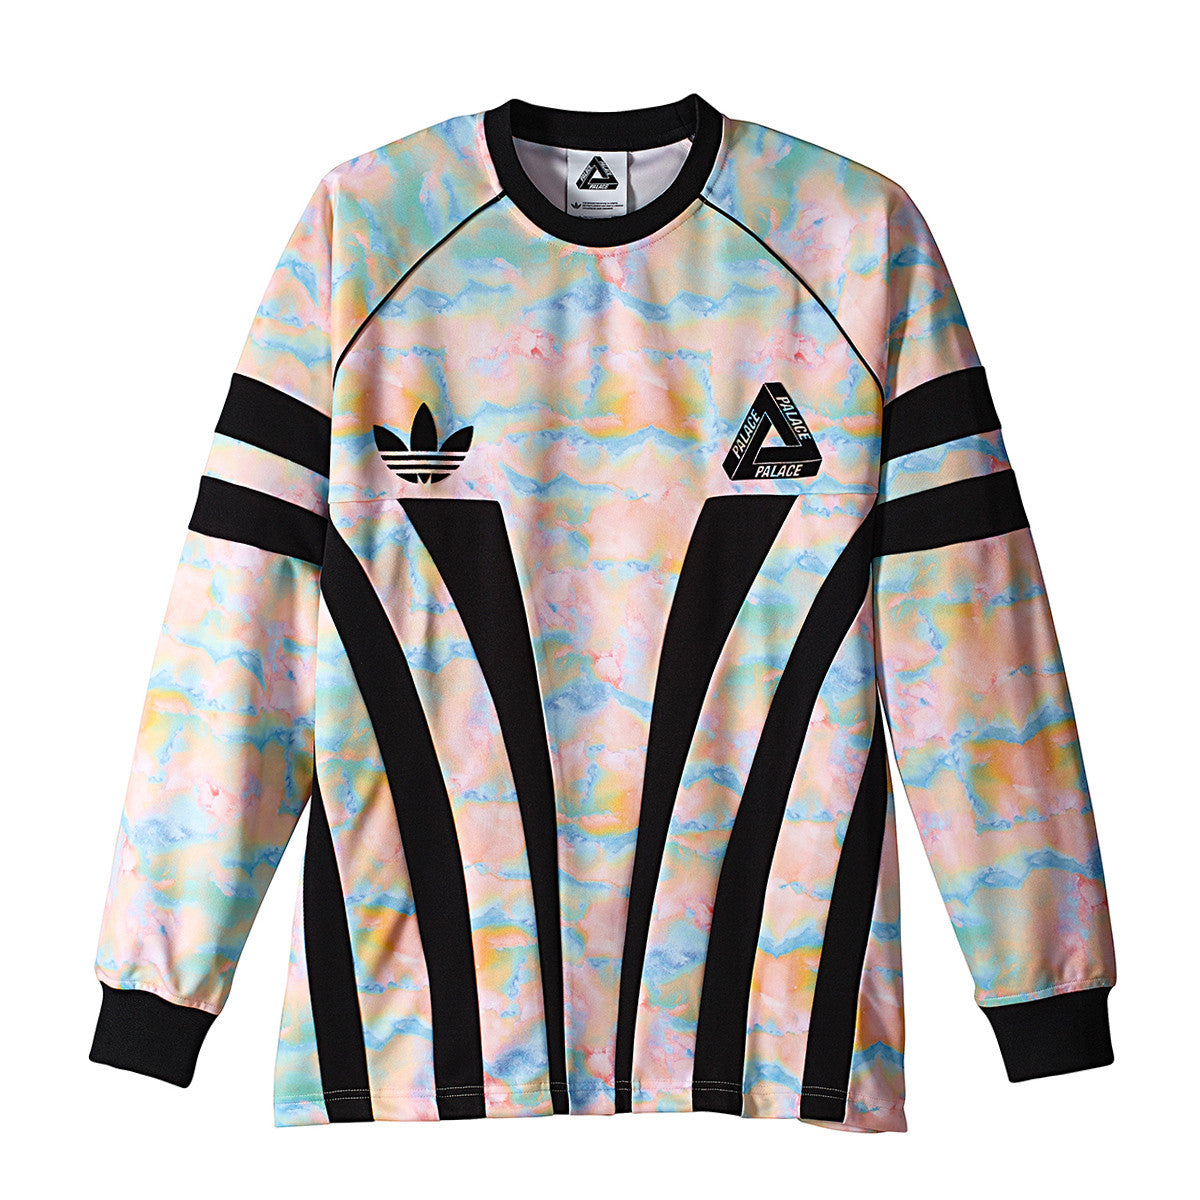 Adidas x Palace Graphic Goalie Shirt